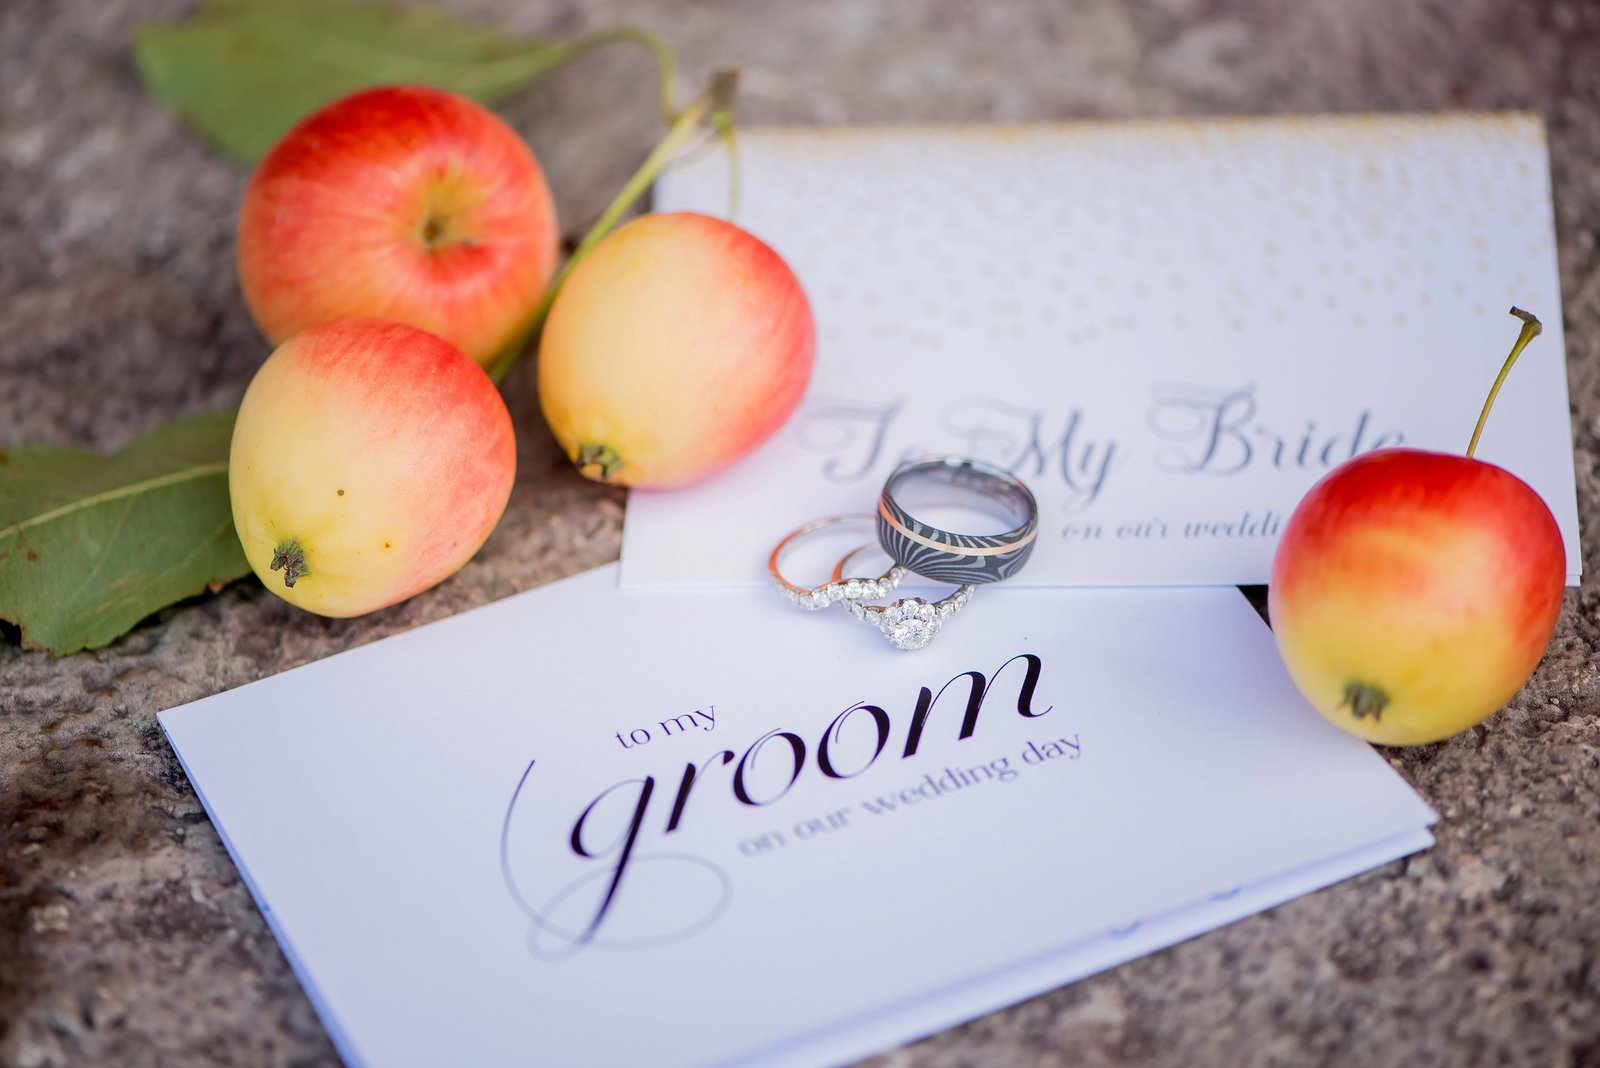 Bride and groom letters and rings photographed by Kris Kandel. Apples and fall details at the bluestem event center.